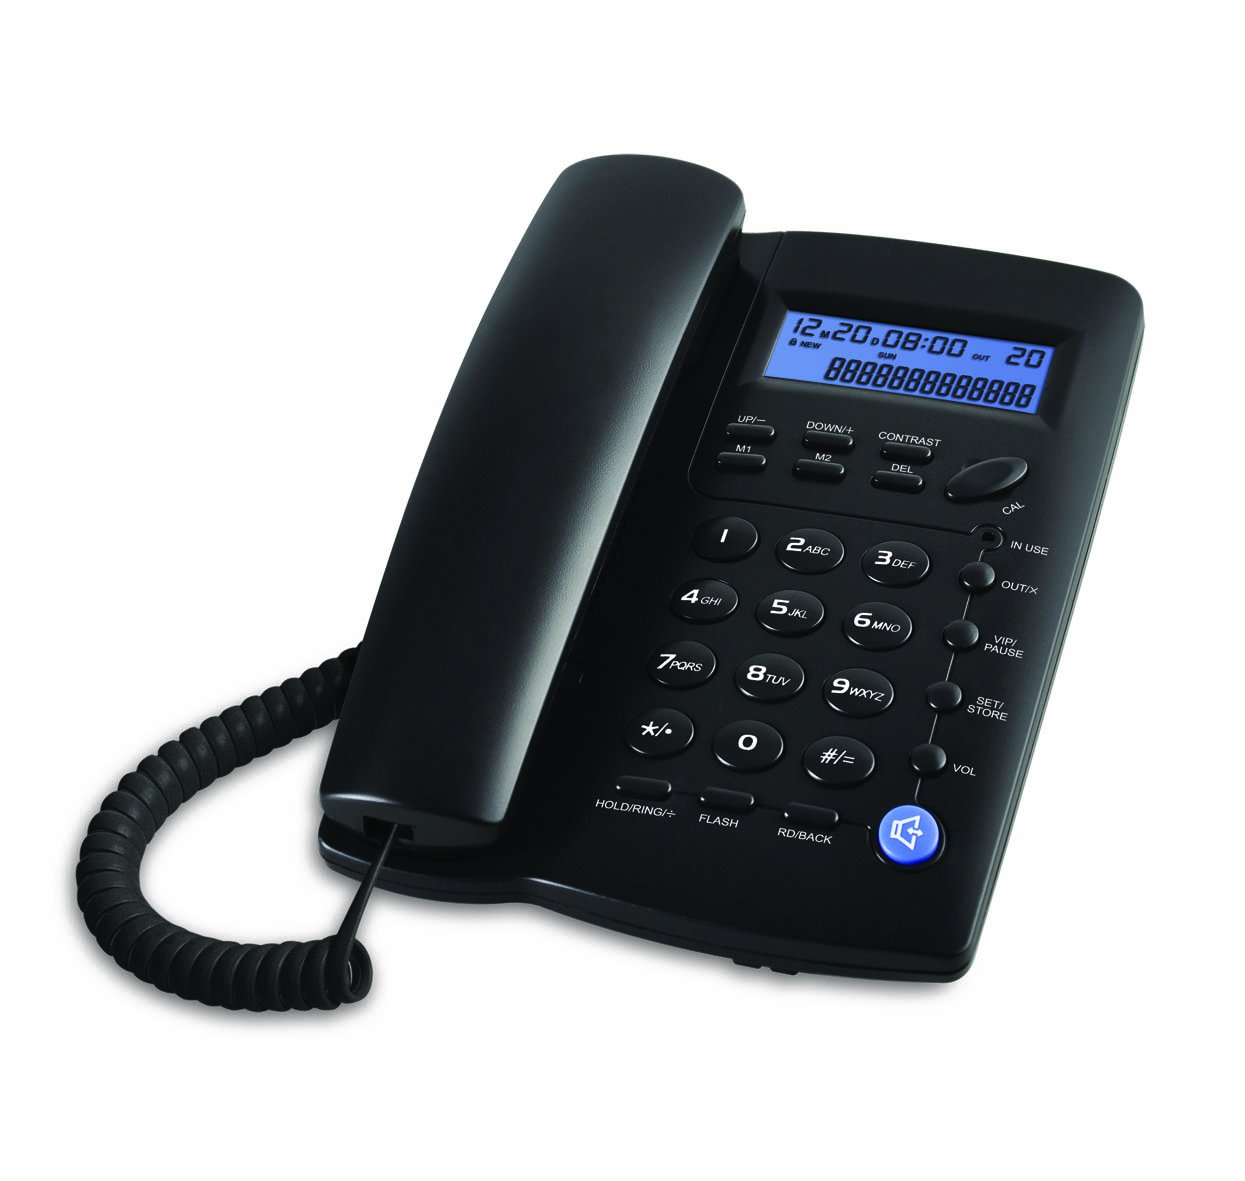 Ornin Y043 Corded Telephone with Speaker, Display, Basic Calculater and Caller ID, Black